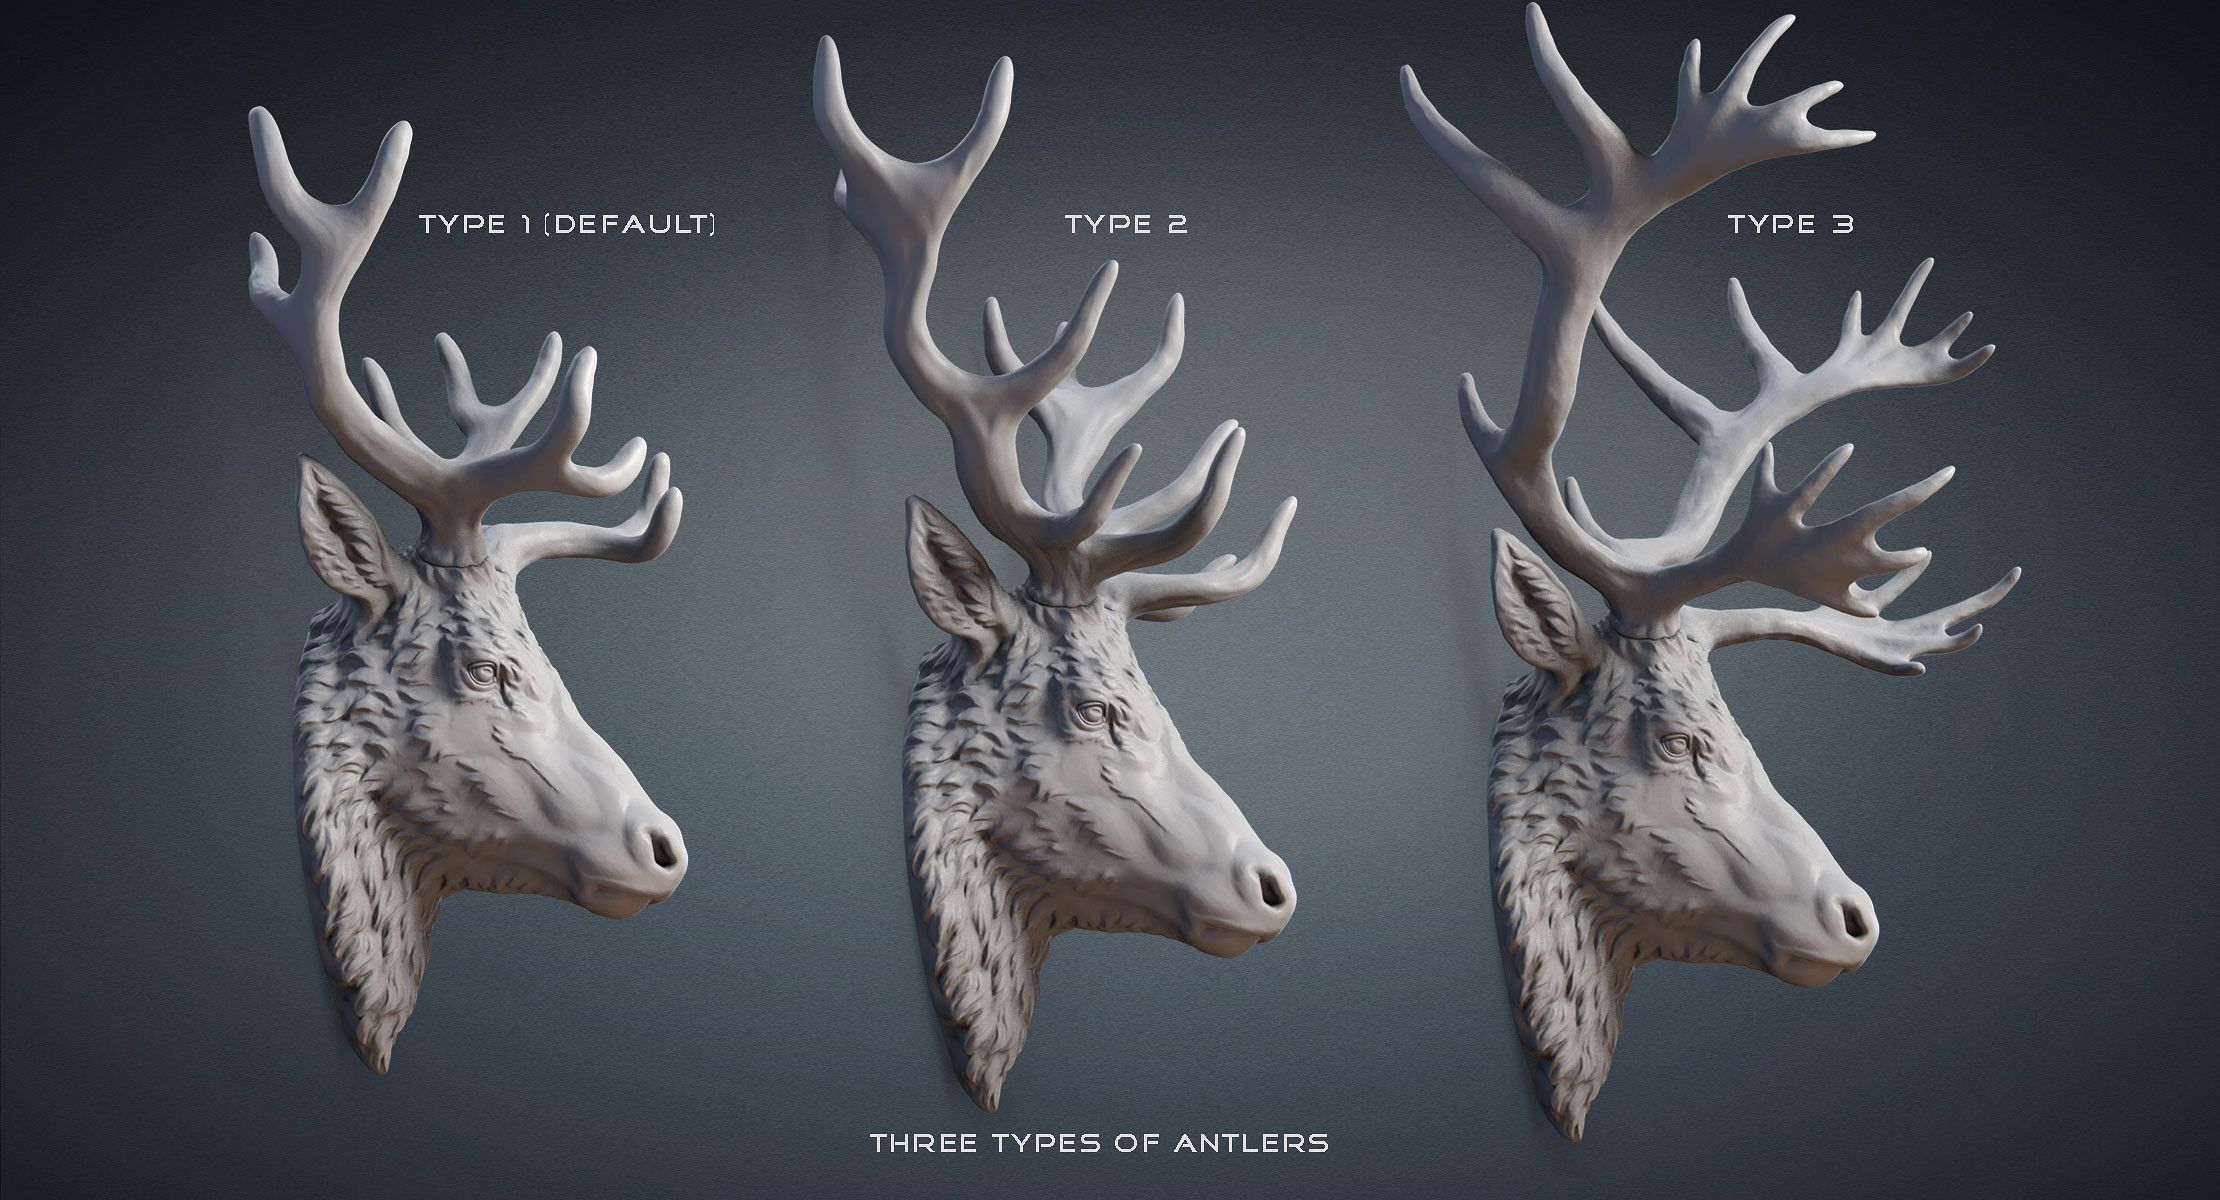 Stag Deer Reindeer Head Sculpture 3d Model For 3d Printing Cnc Carving Also For Making A Mold For Casting In Metal Plas Reindeer Tattoo Deer Statues Deer